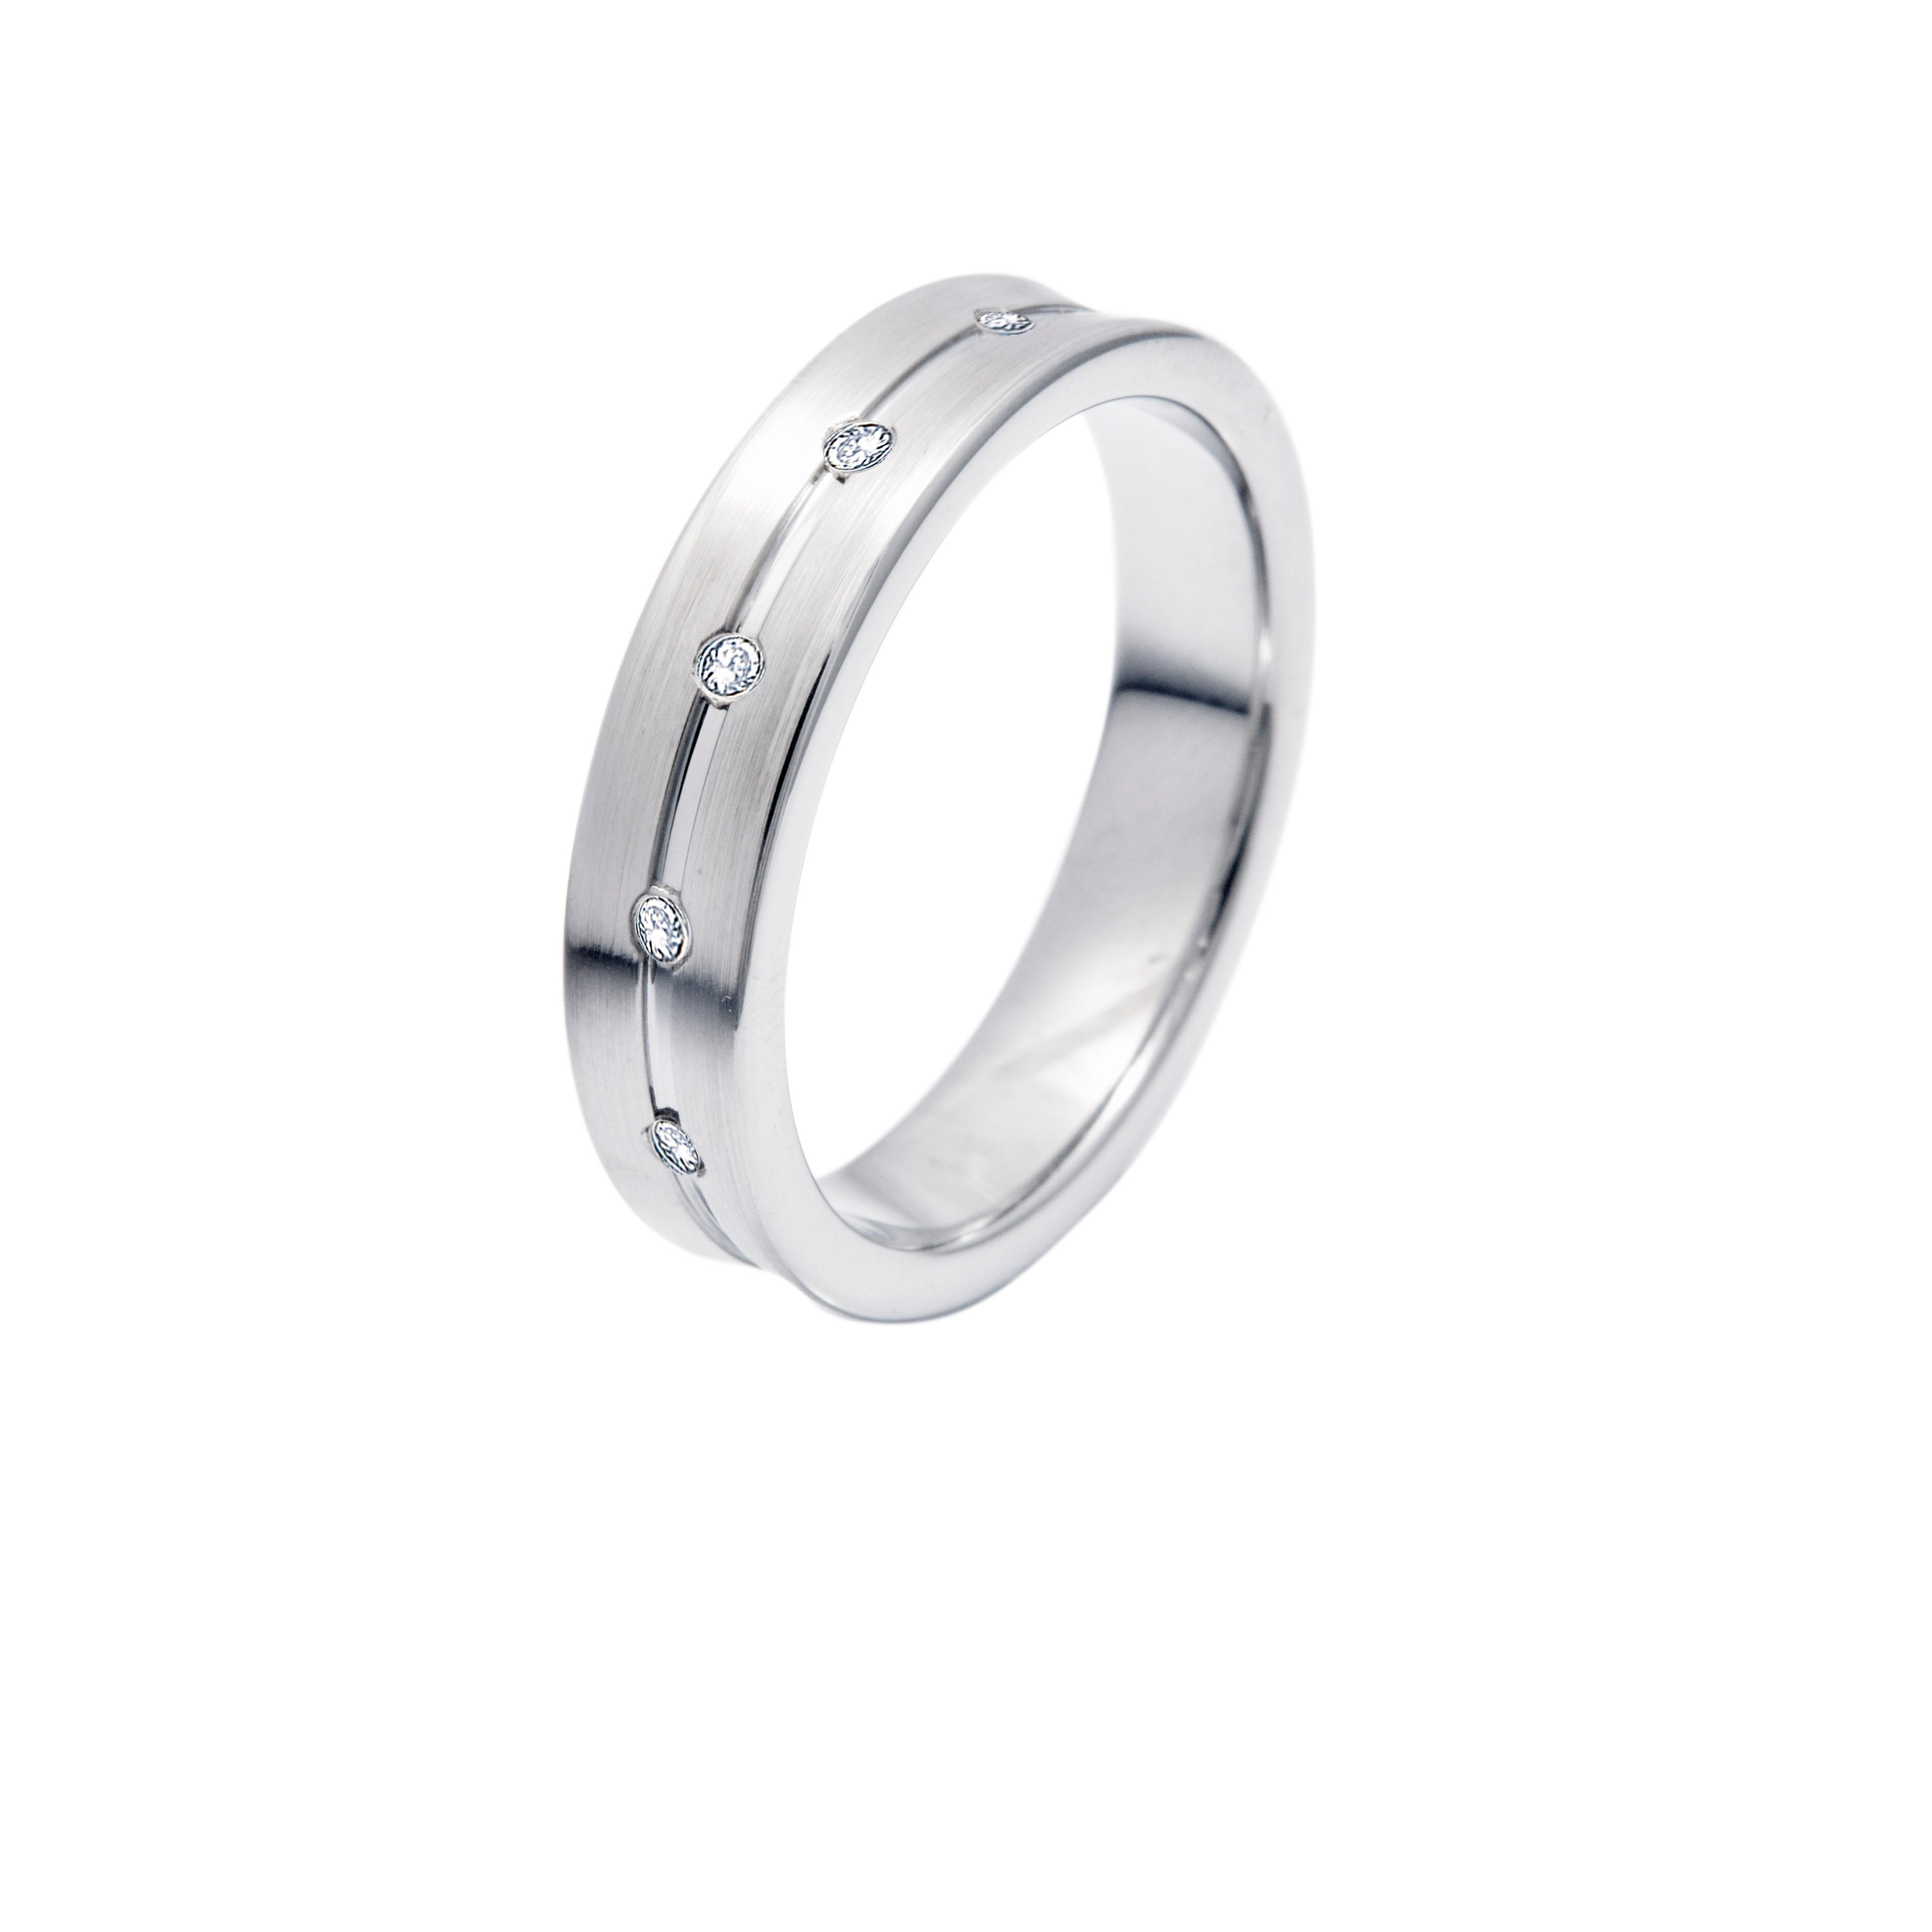 The Supreme Classic Silver Tungsten Ring with Diamonds in Five Rows